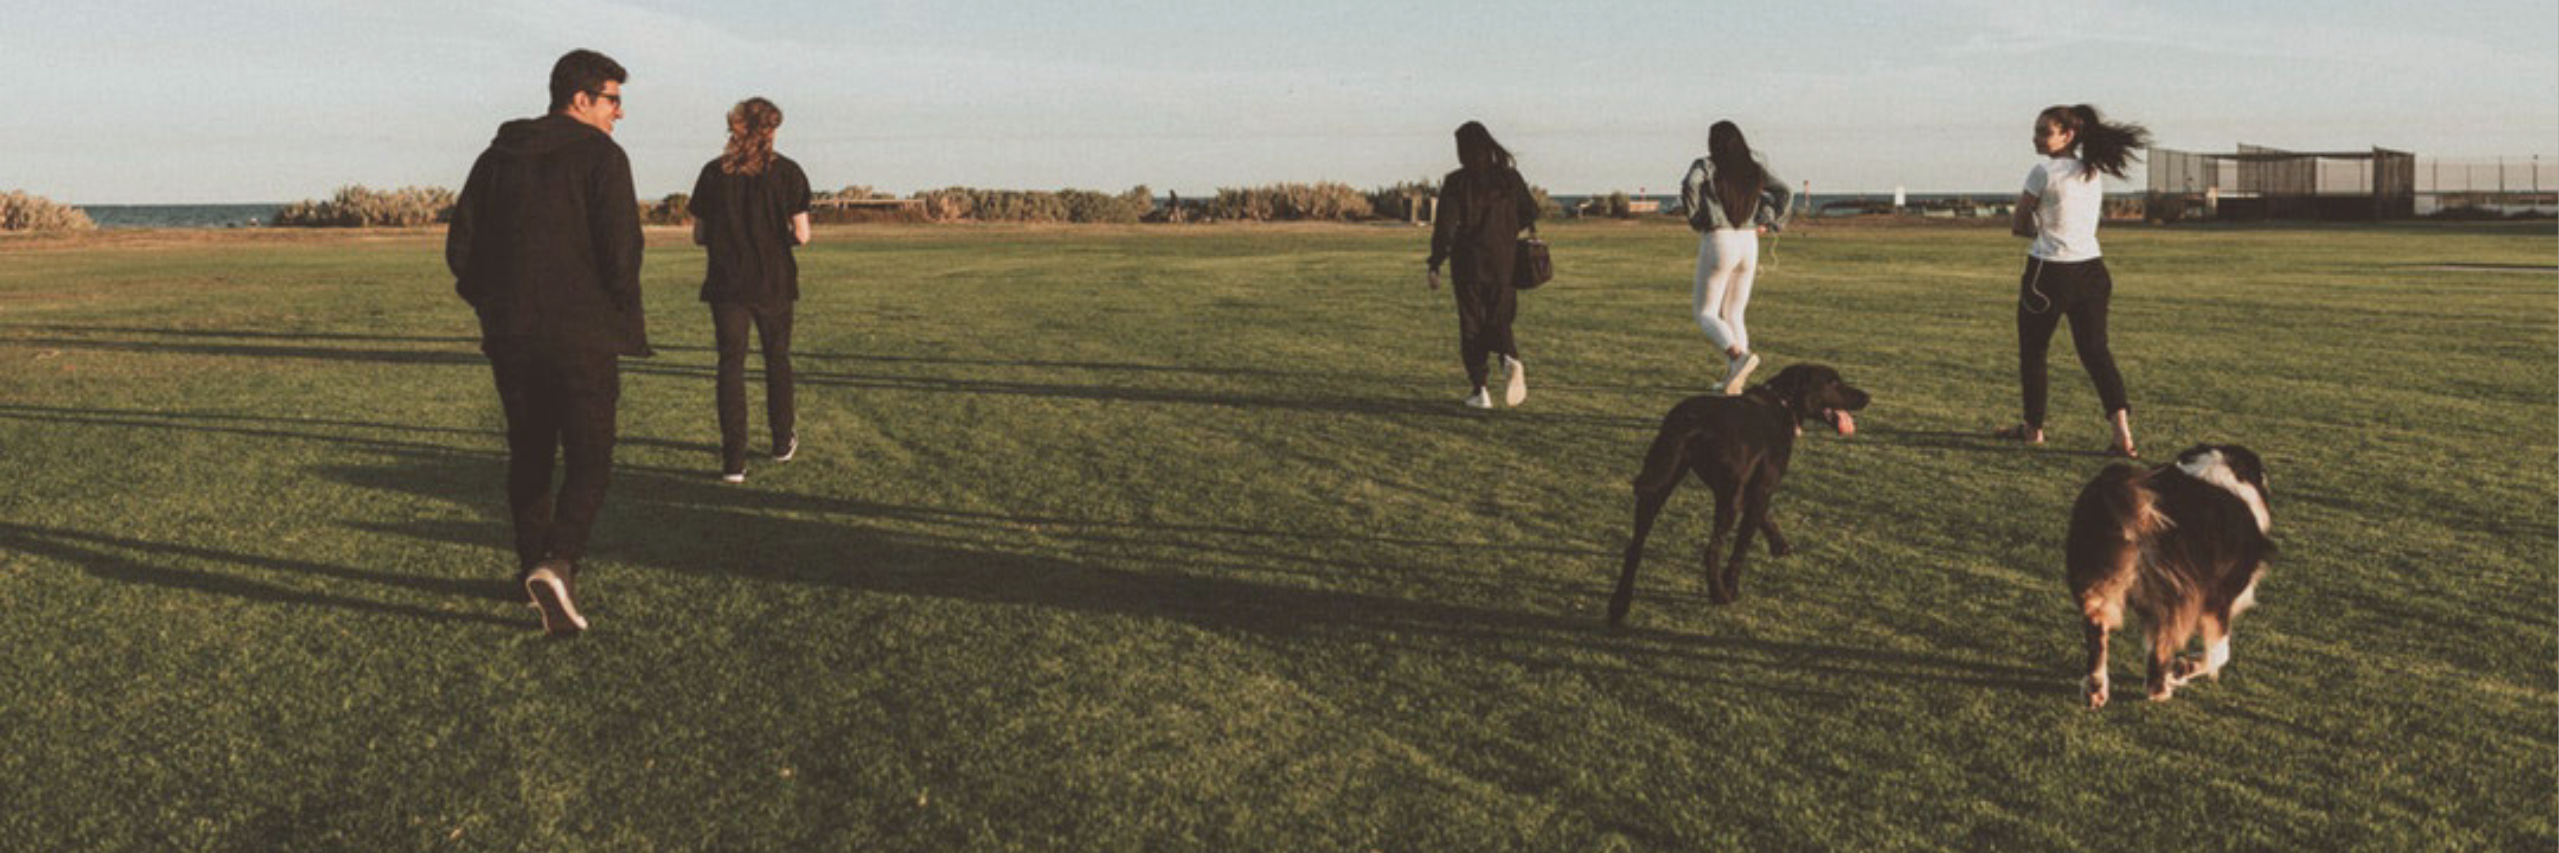 Several teenagers stride across a grassy field